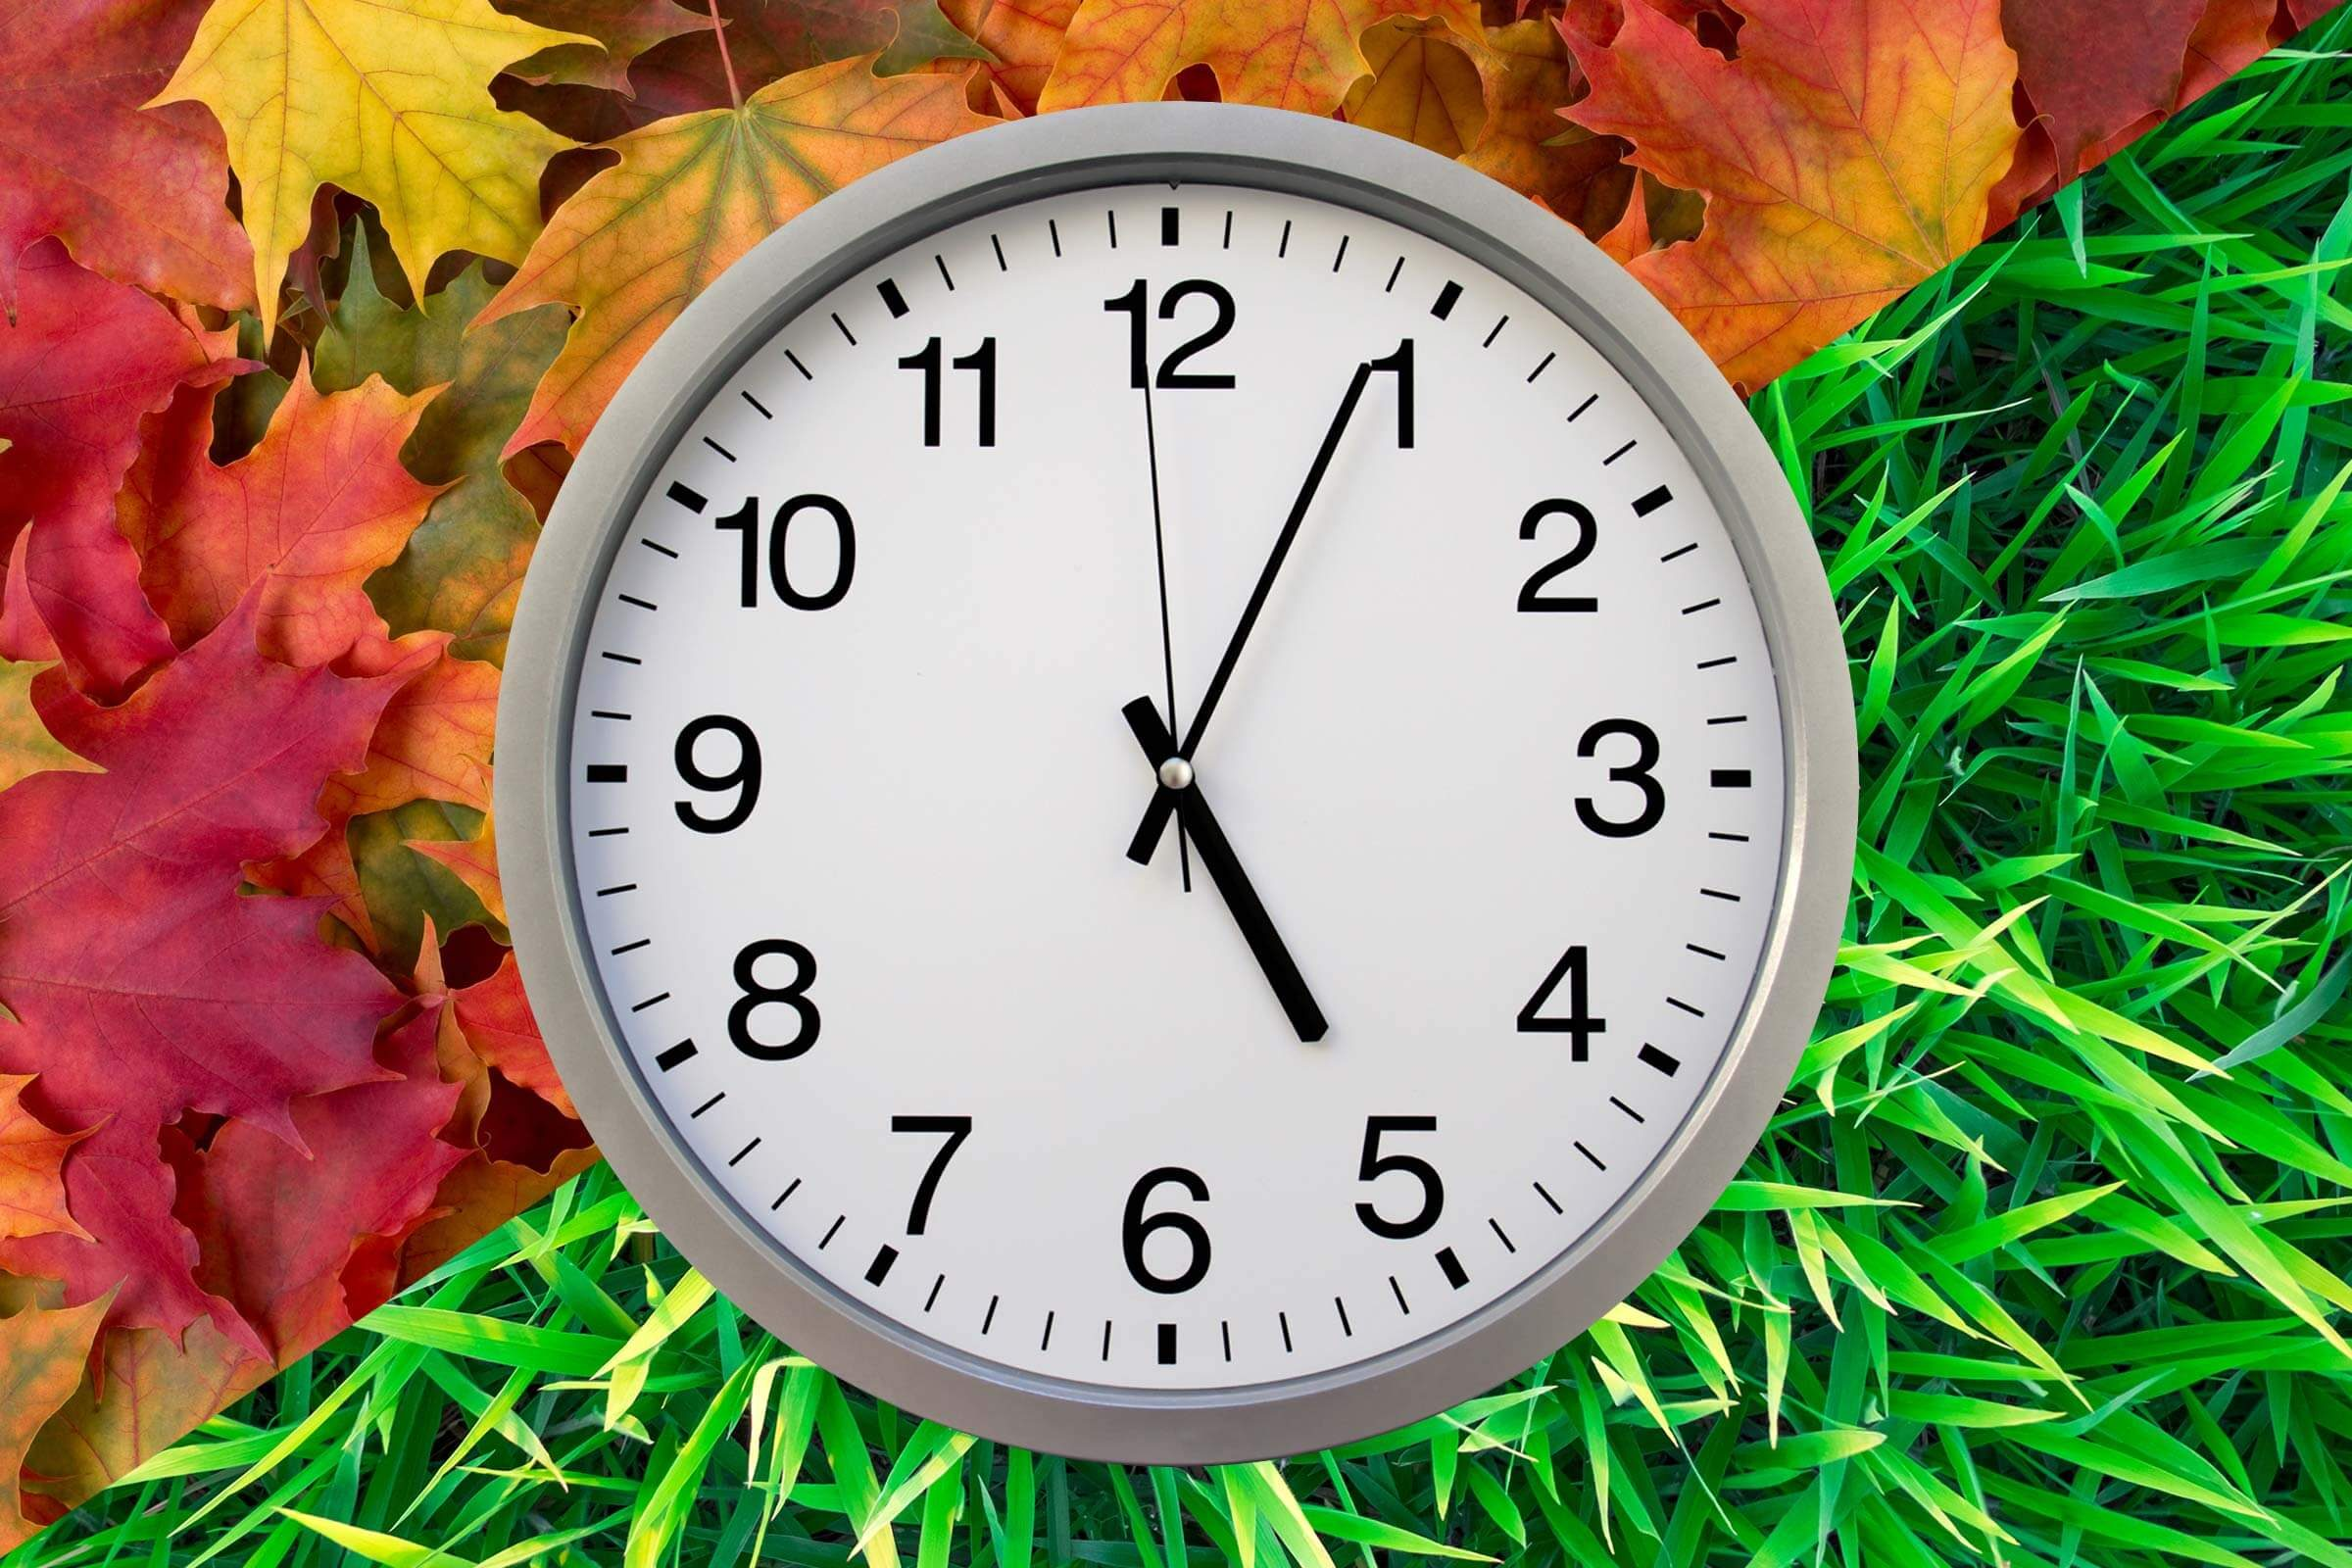 These States Don't Observe Daylight Saving Time | Reader's ... on show time zones, state to state time zones, standard time zones, north america time zones, fall time zones, indiana time zones, american time zones, utc time zones, eastern time zones, tennessee time zones, different time zones, europe time zones, nebraska time zones, washington time zones, na time zones, brazil time zones, four time zones, christmas time zones, all us time zones, social studies time zones,